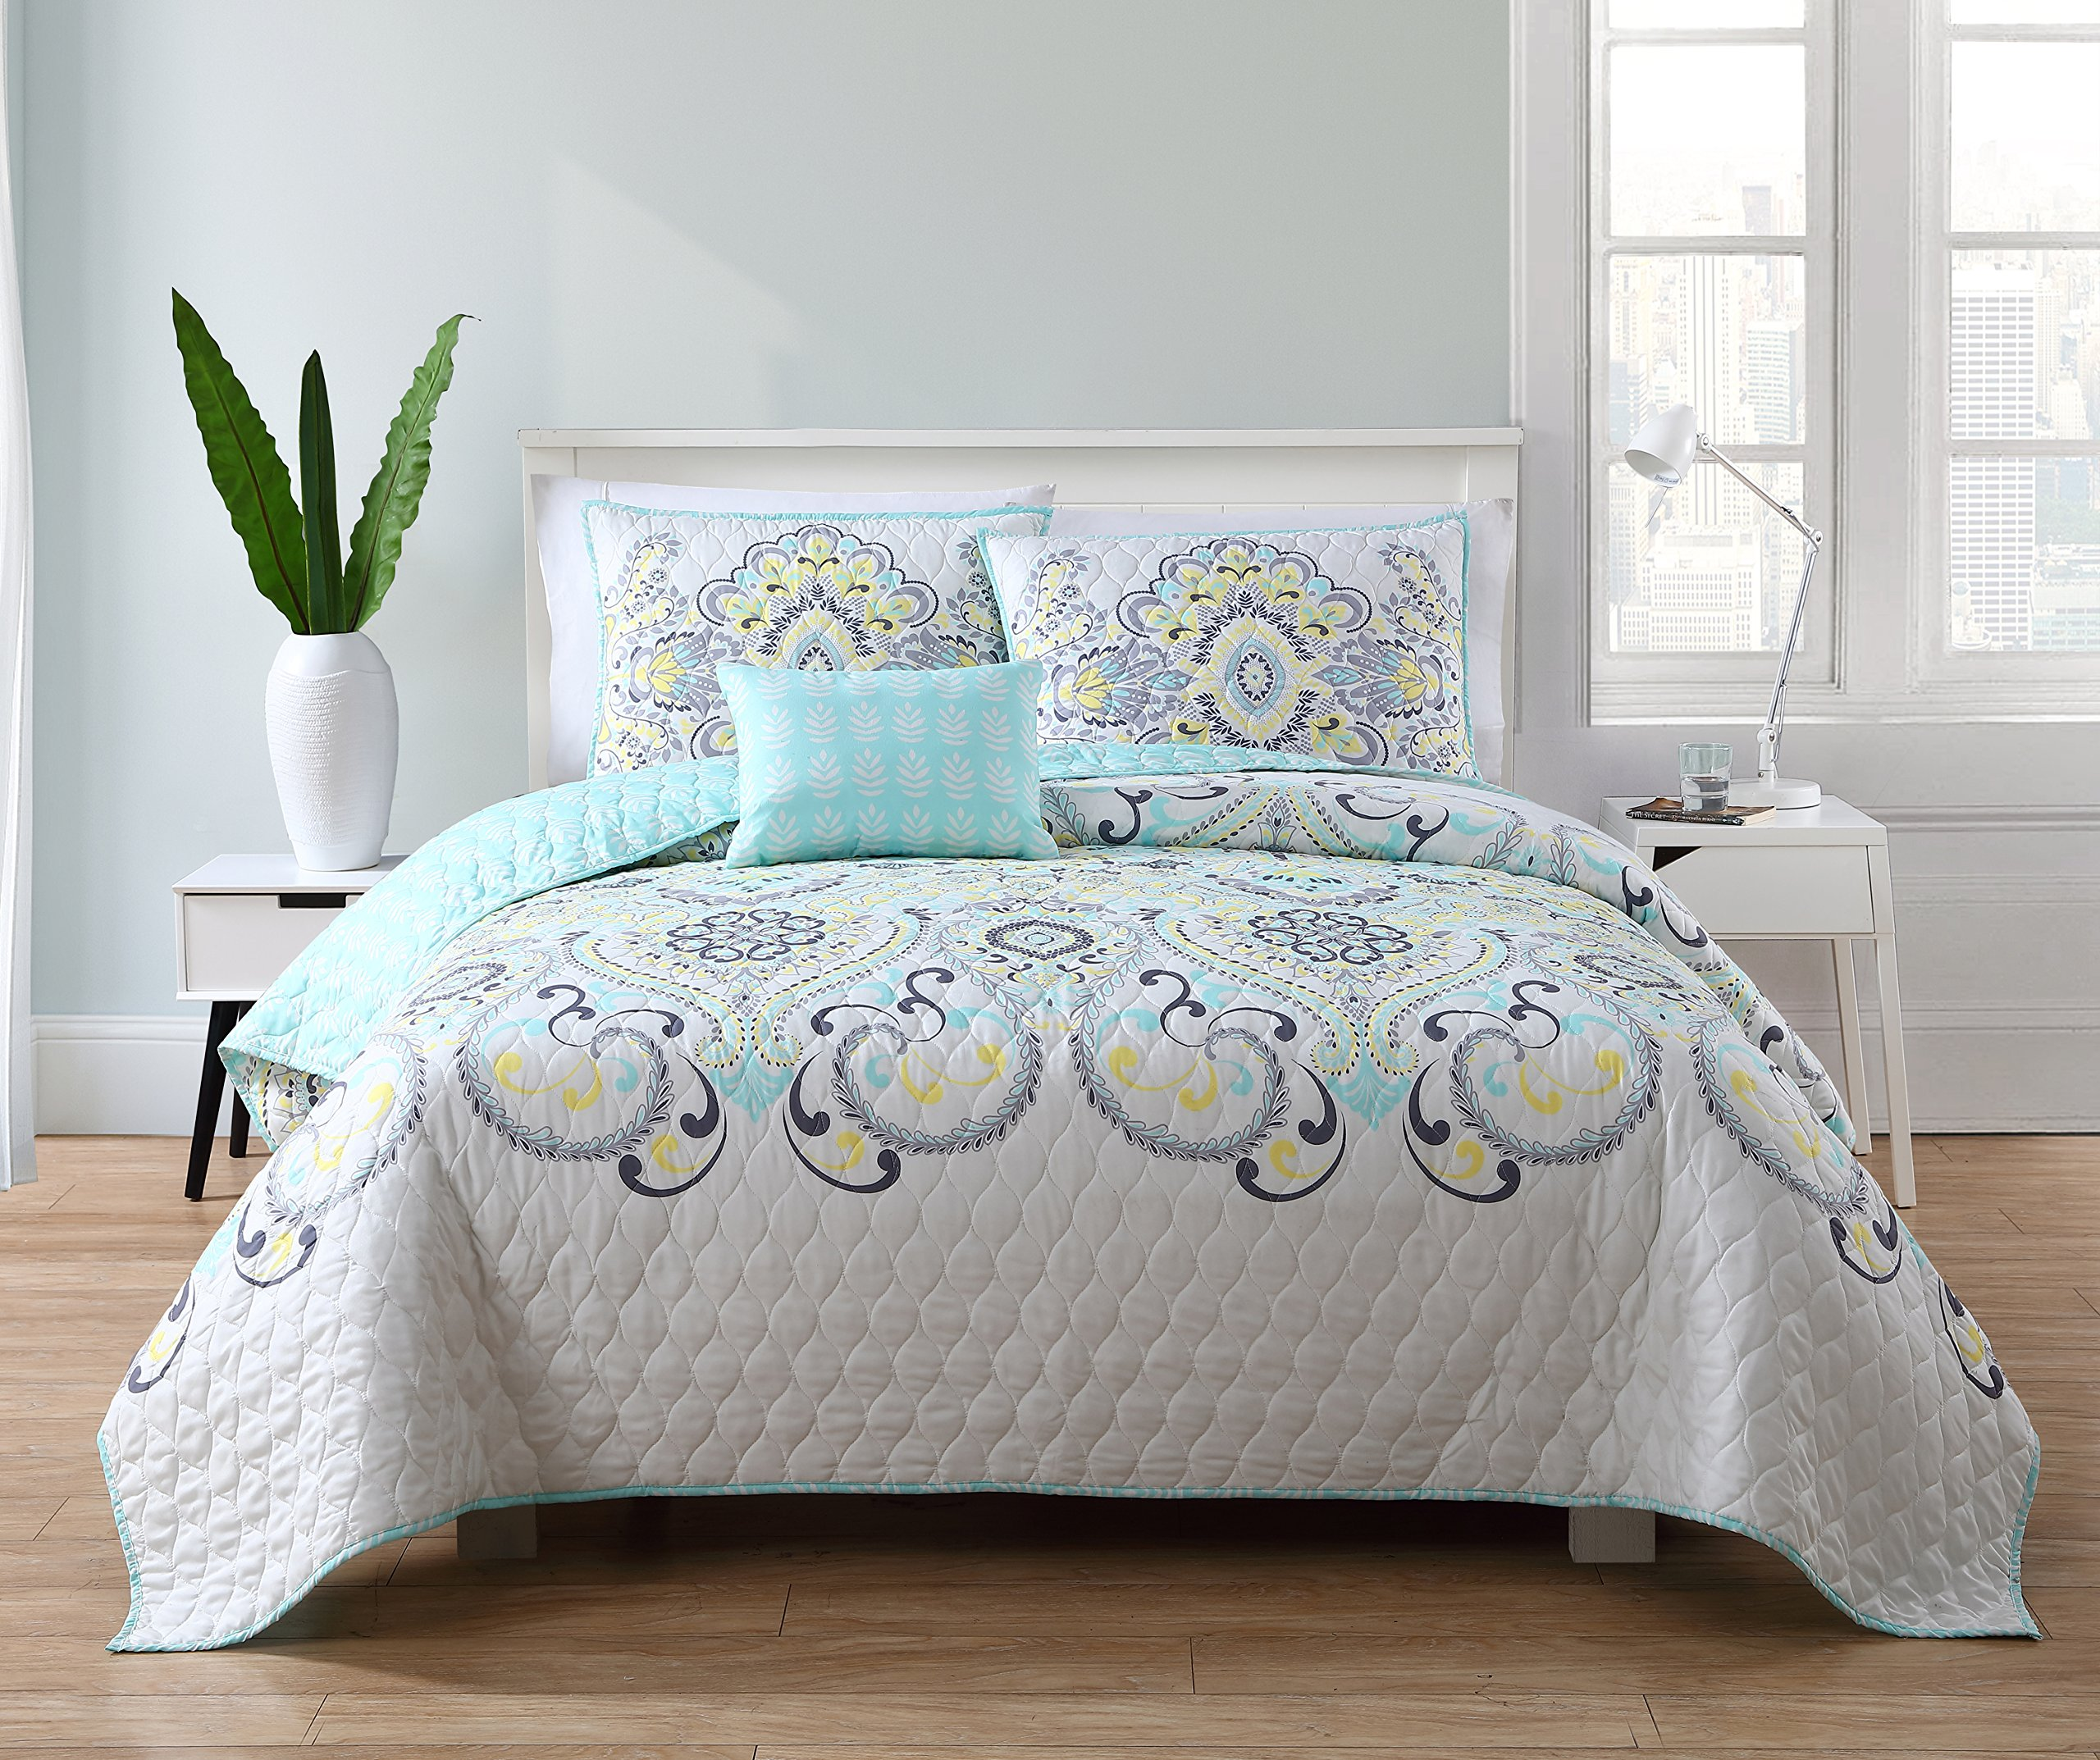 VCNY Home Amherst Bedding Quilt Set, Full/Queen, Yellow